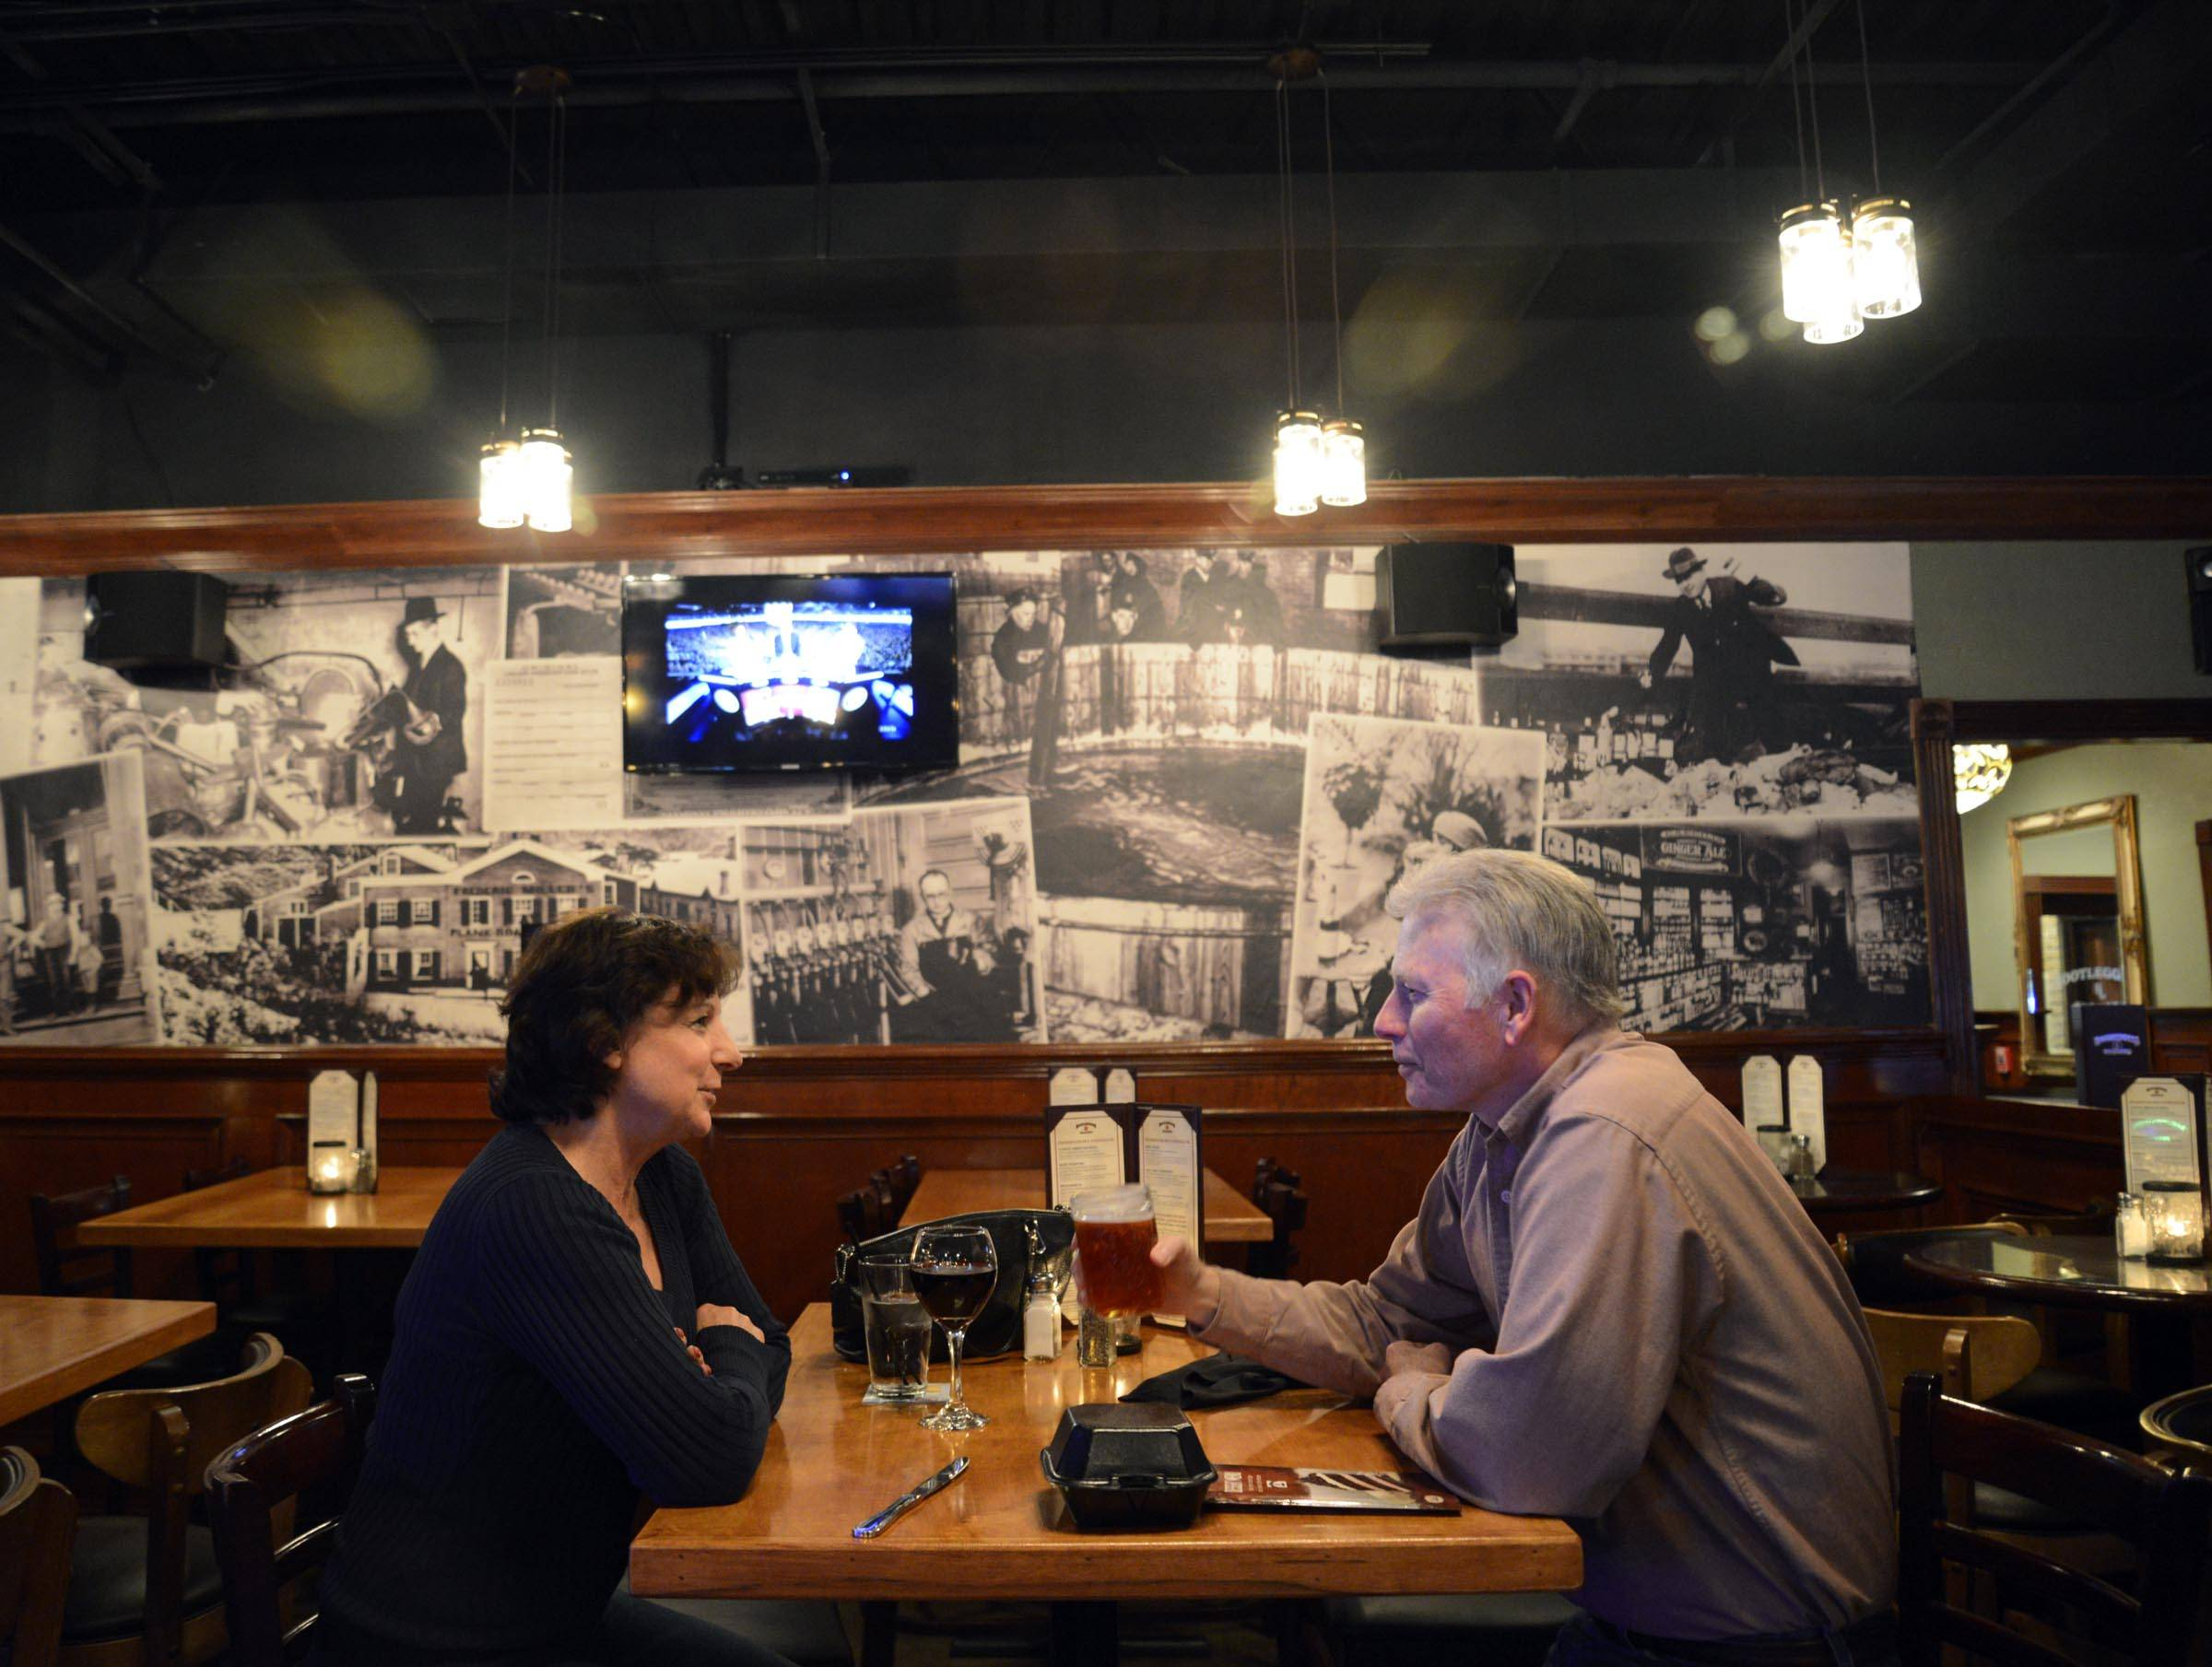 Prohibition Kitchen prohibition-era charm permeates expansive, yet cozy, bootleggers